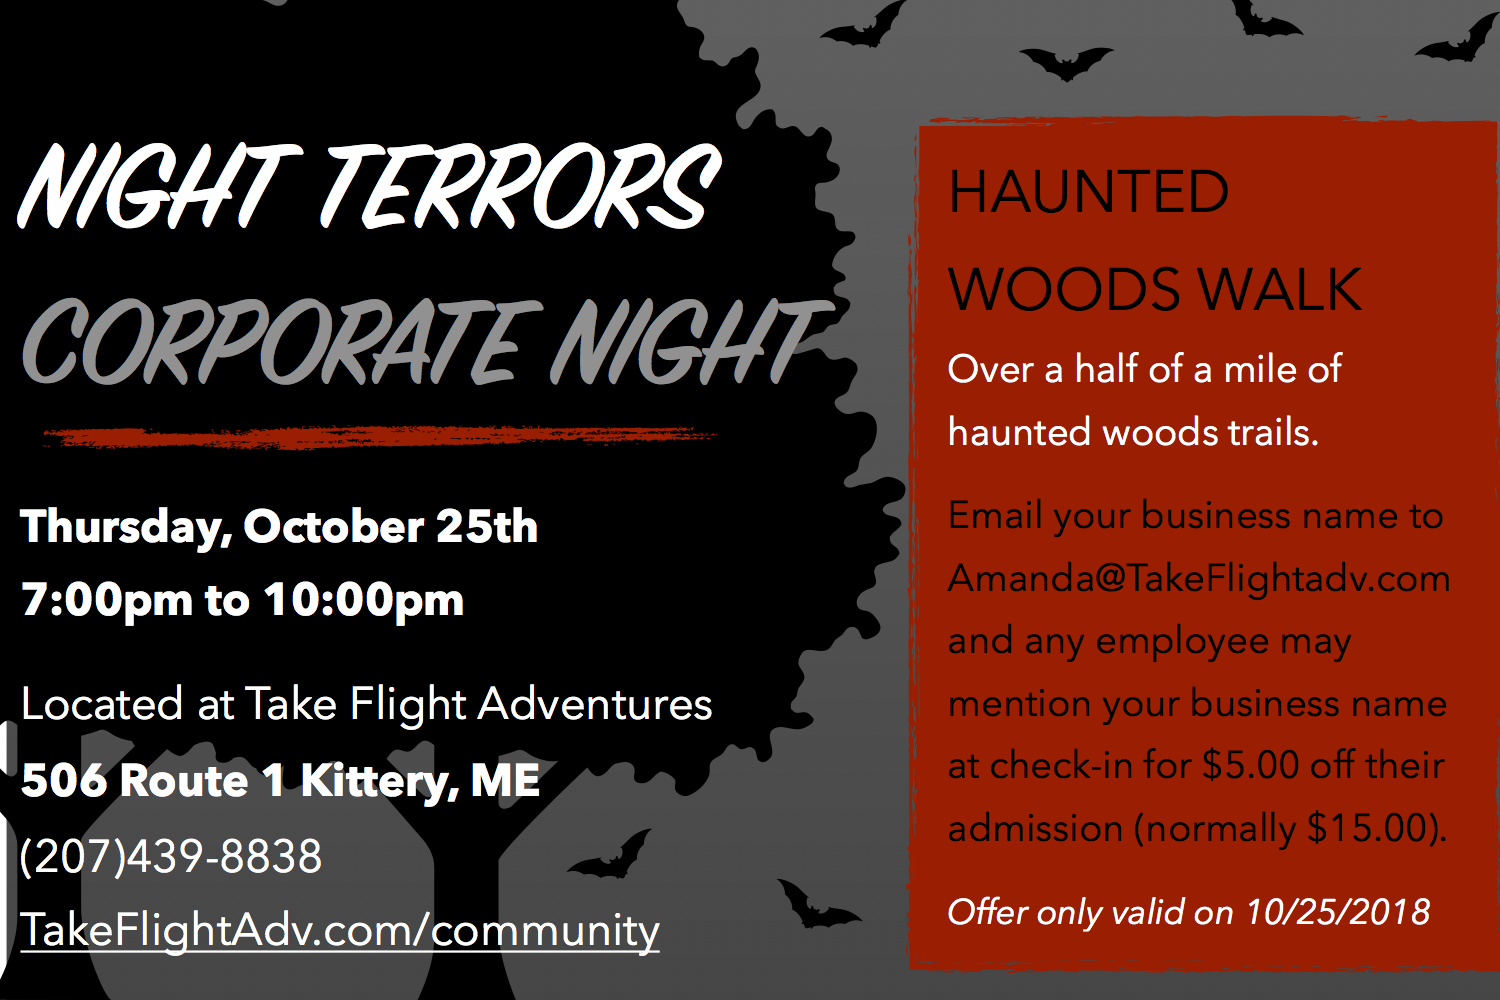 Night Terrors Corporate Night